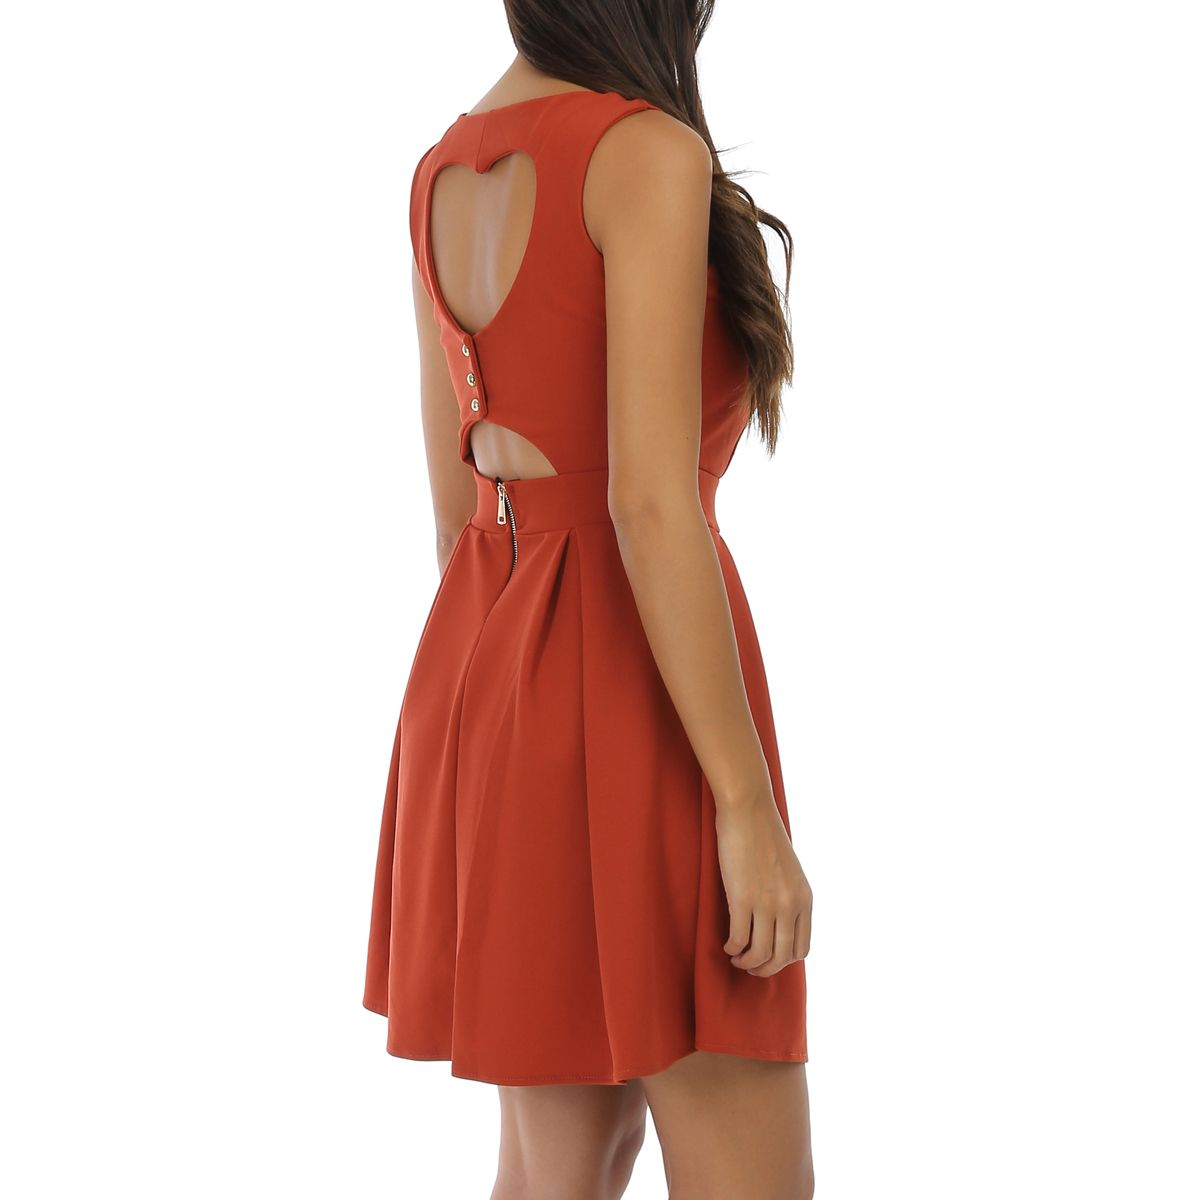 Robe coeur patineuse rouille